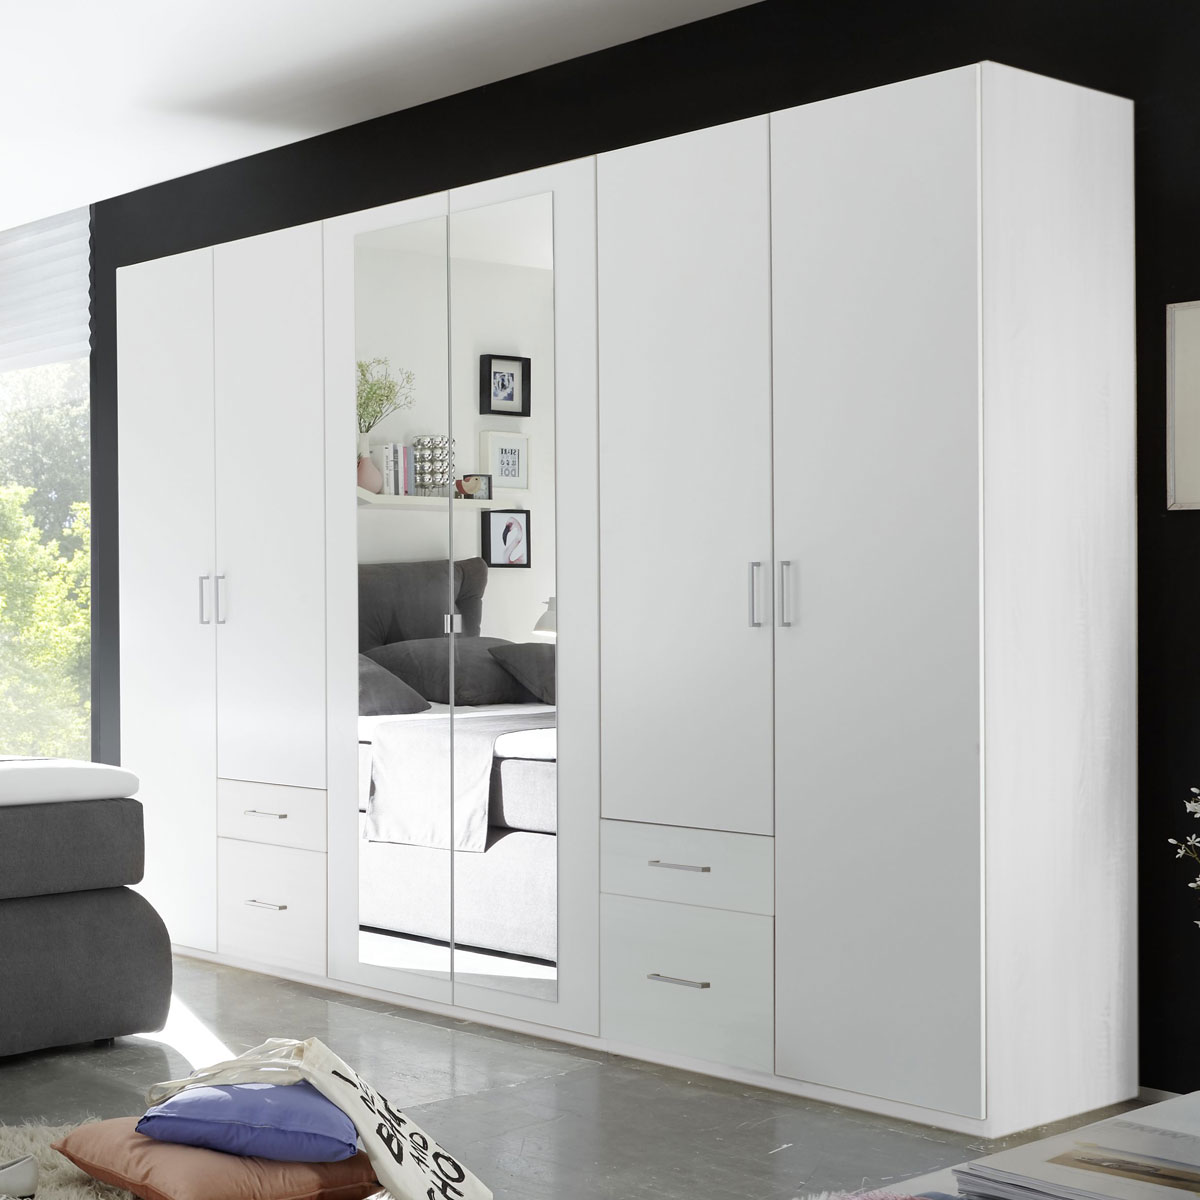 kleiderschrank fly schrank 6 t rig schlafzimmer wei mit. Black Bedroom Furniture Sets. Home Design Ideas